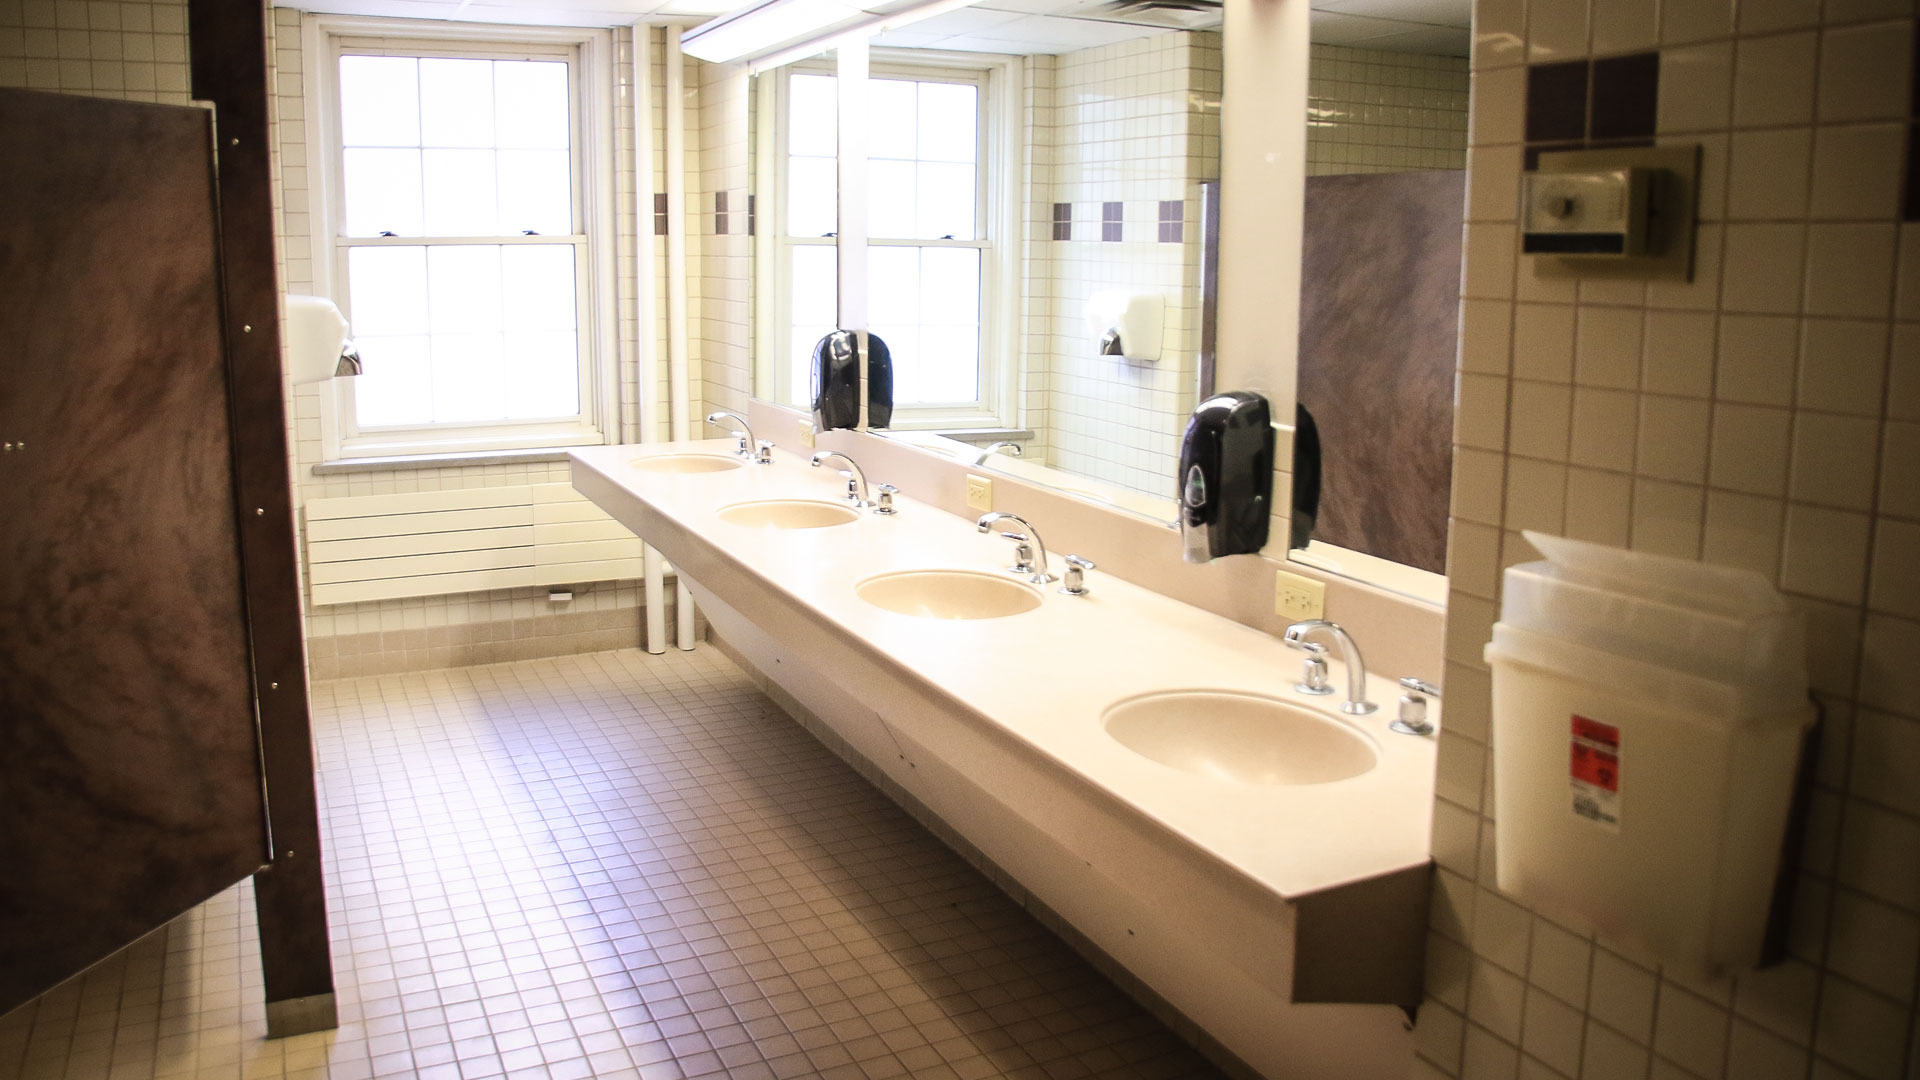 Terrace Hall - Restroom Facilities